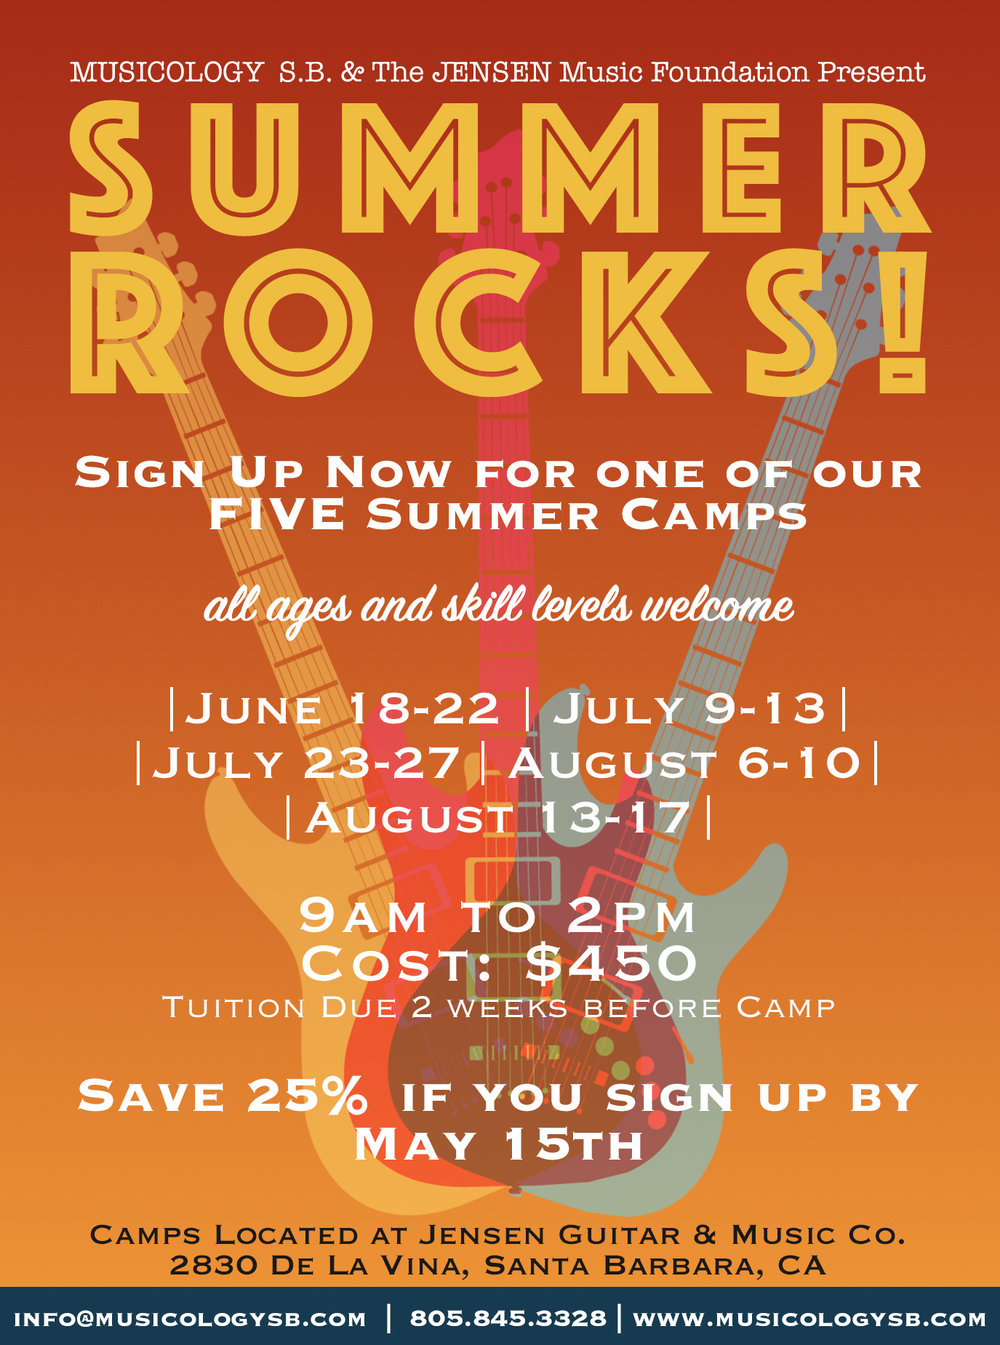 SUMMER Camp Flyer-AprilUpdate.jpg